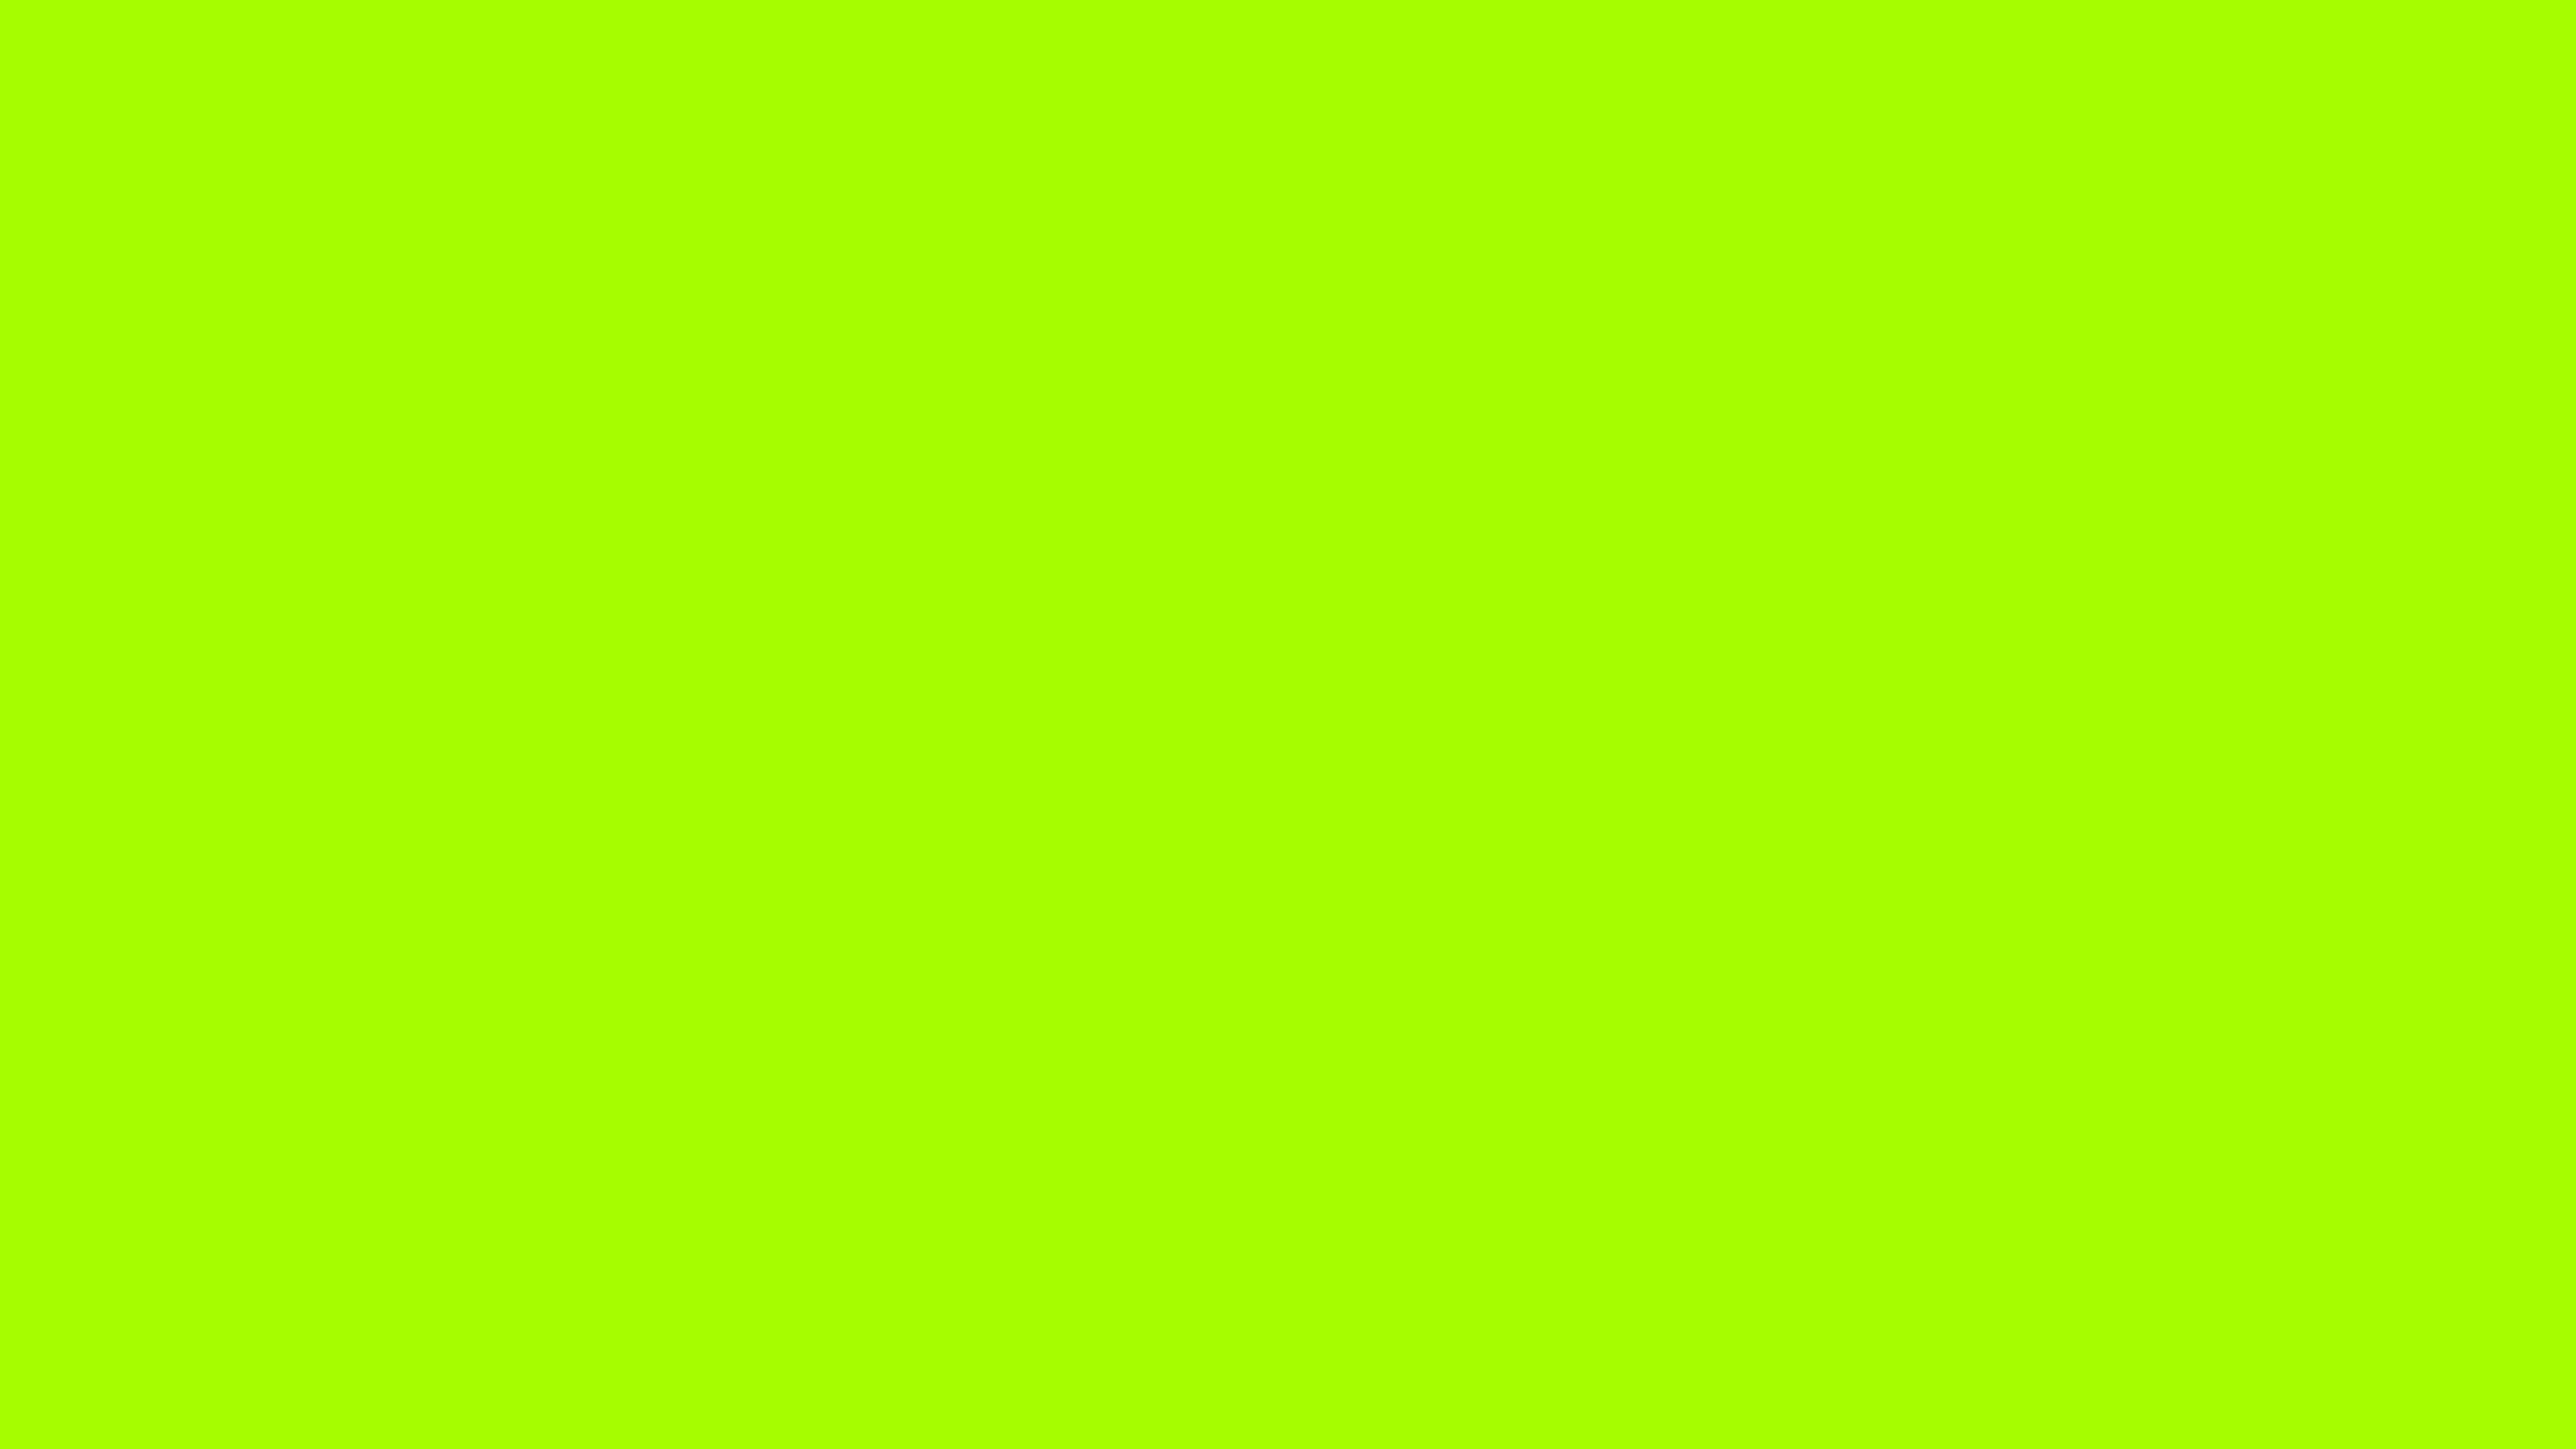 5120x2880 Spring Bud Solid Color Background